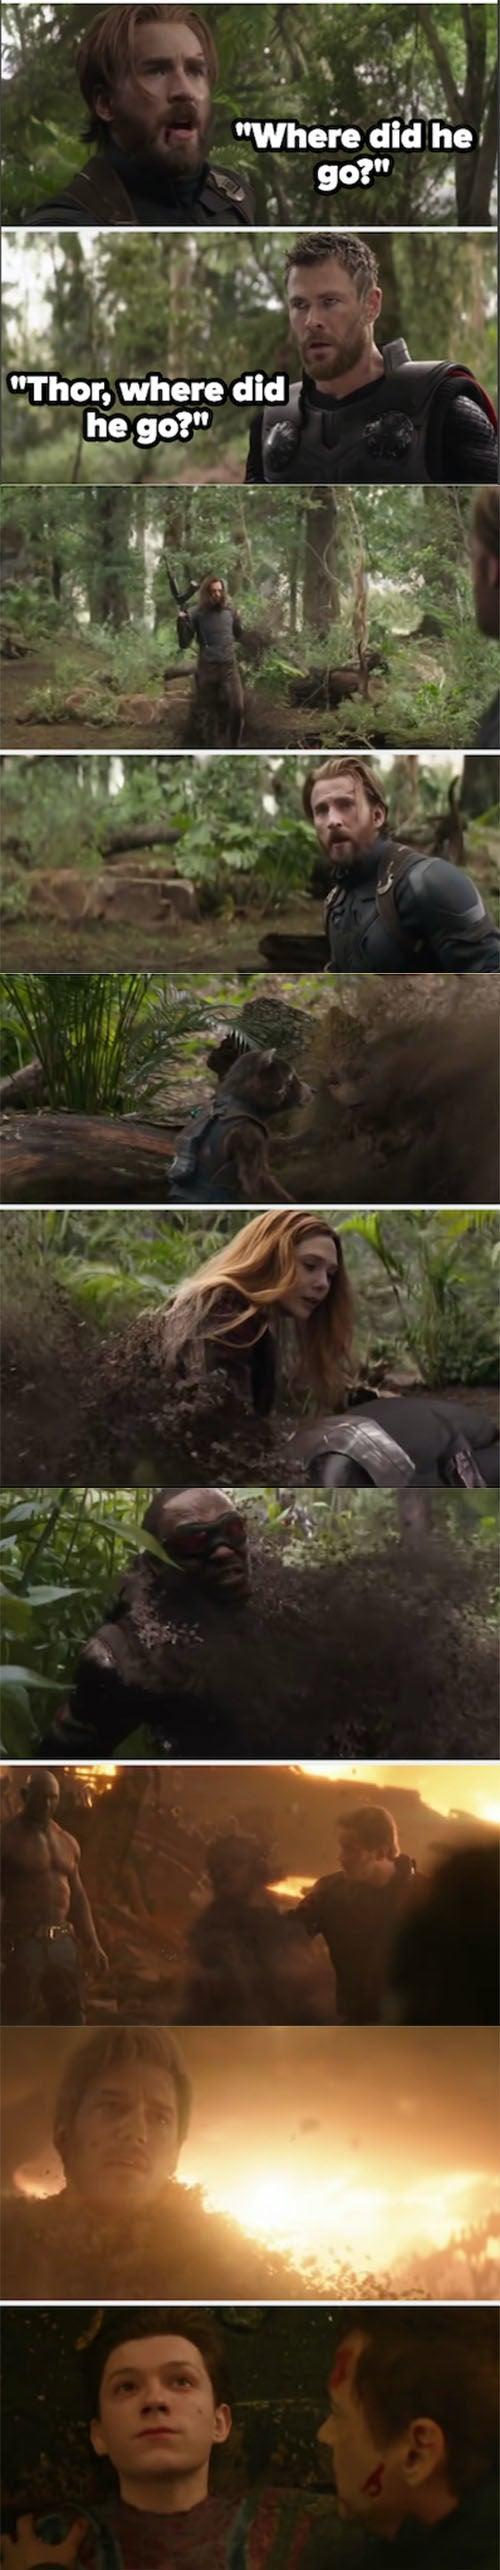 """""""Spider-Man, Groot, Wanda, Sam, and Bucky disappearing after Thanos' snap on """"Avengers: Infinity War"""""""